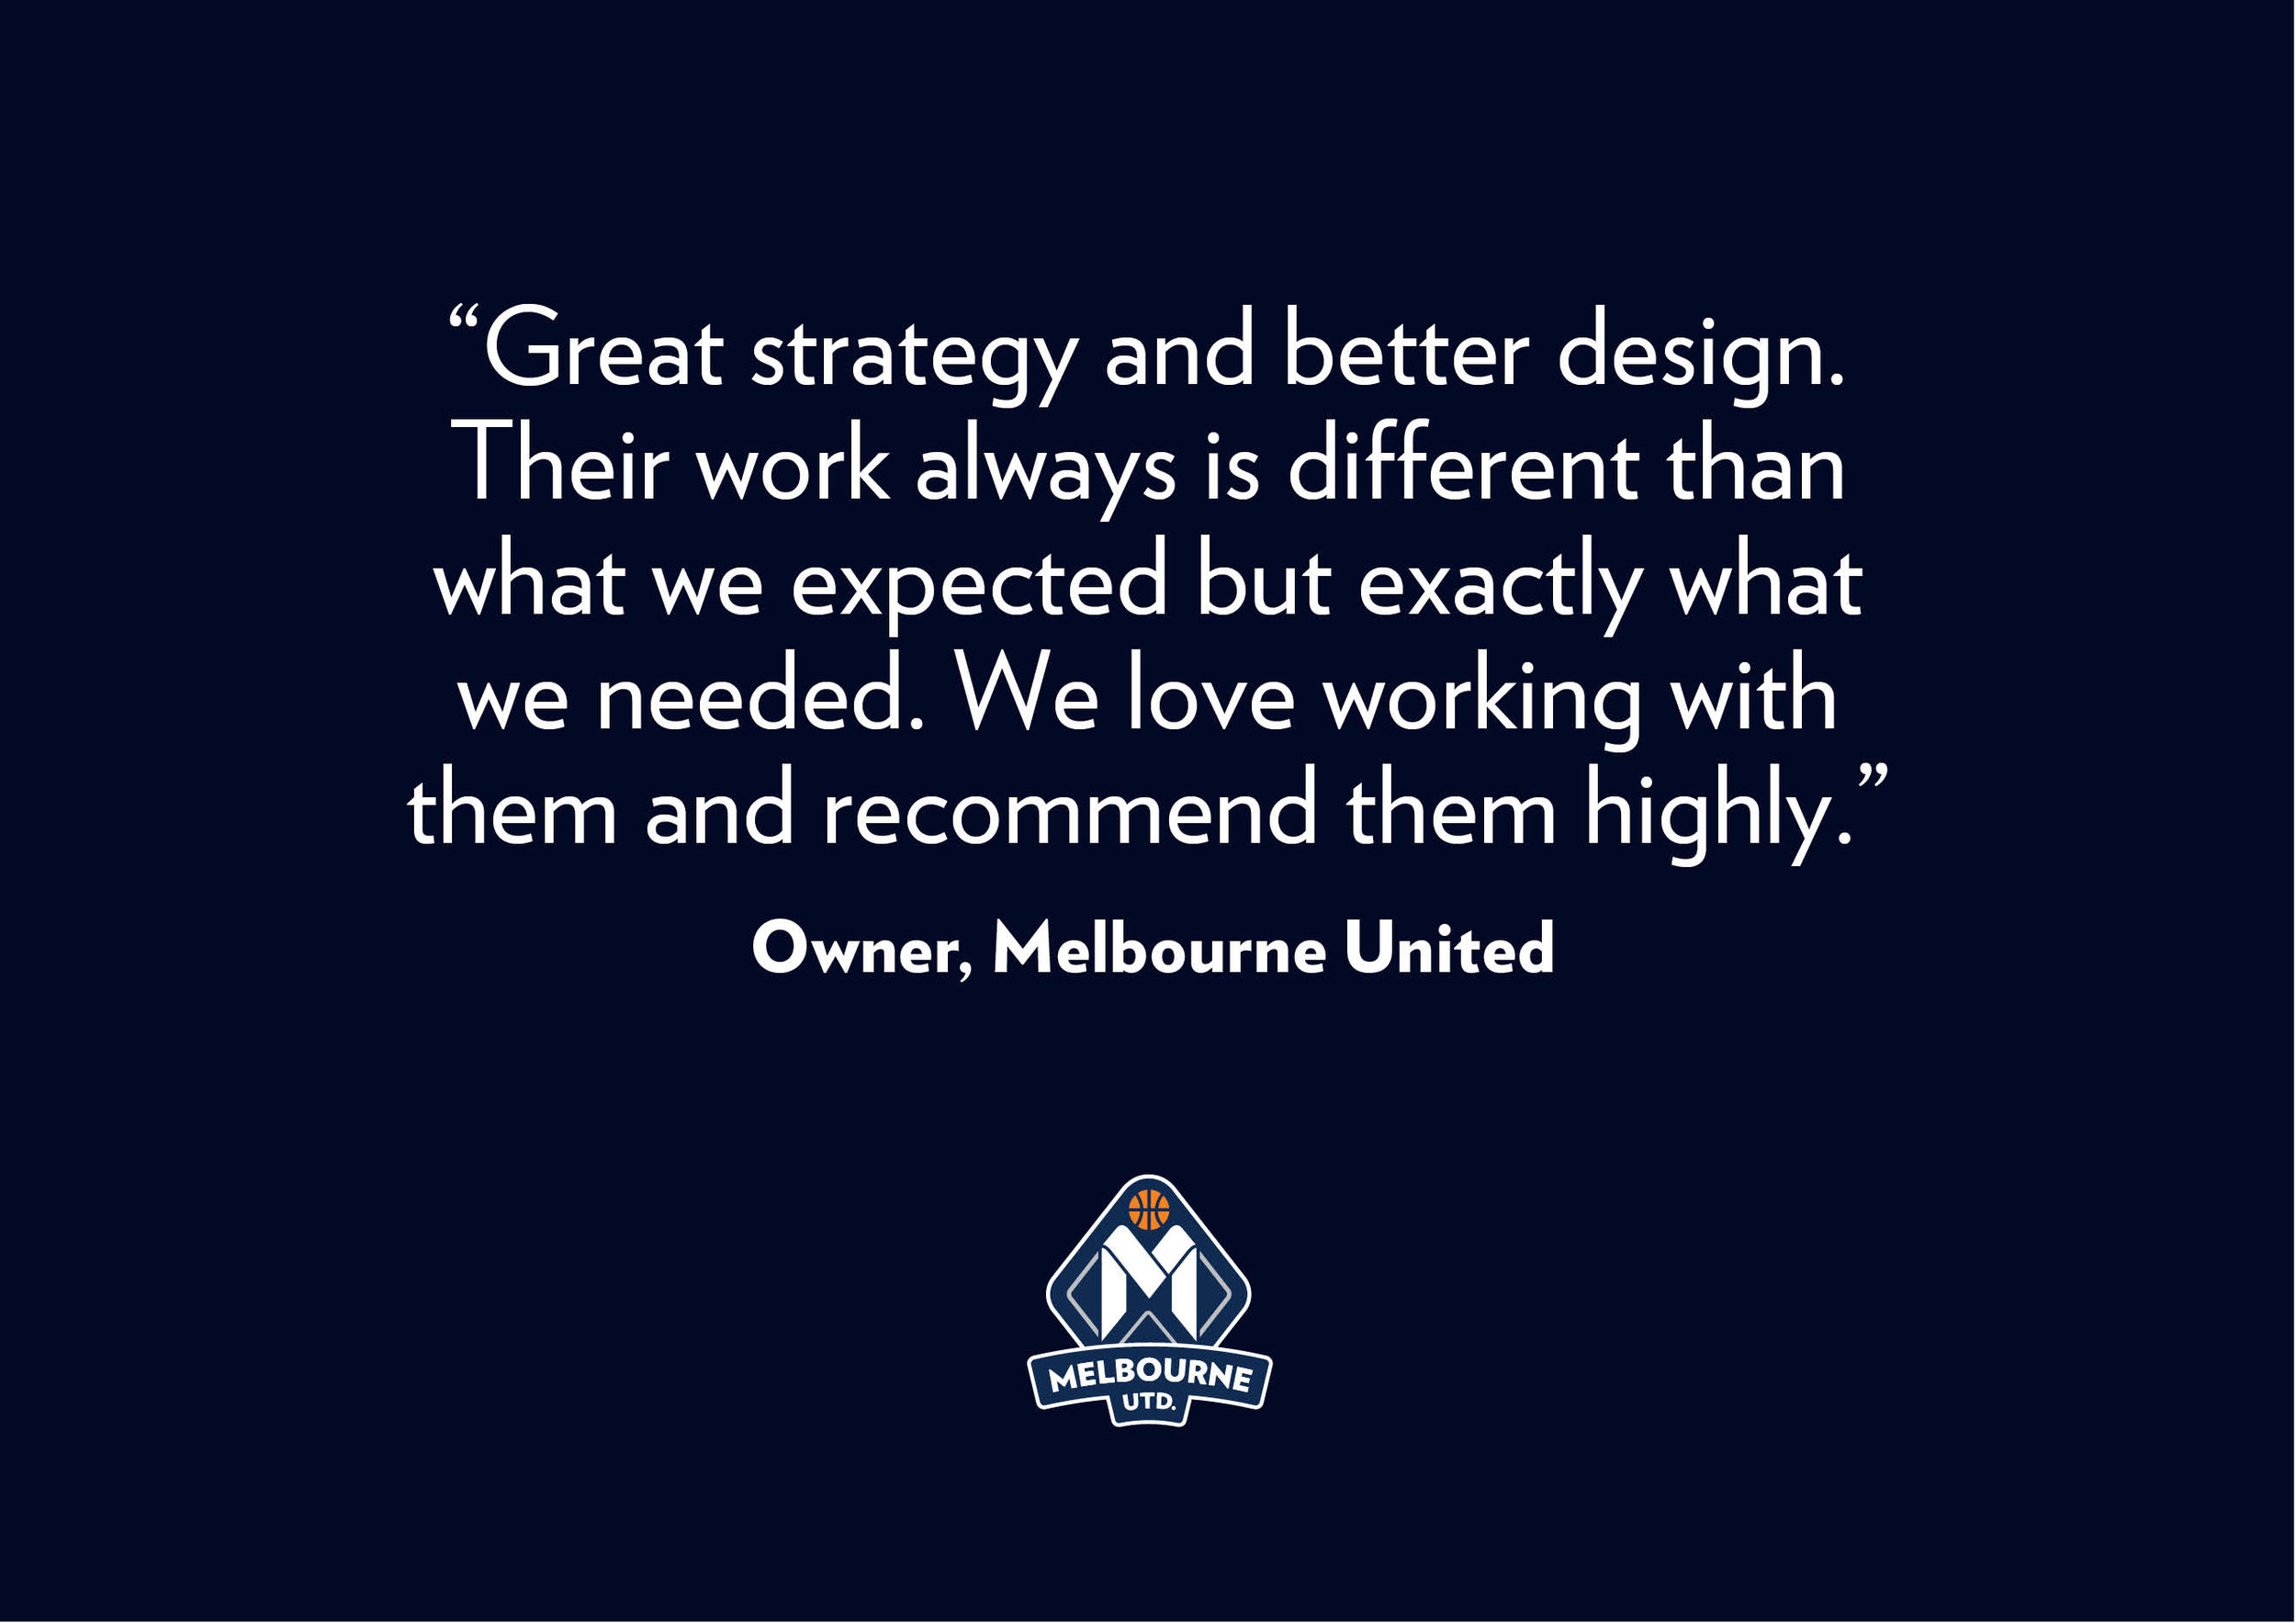 Melbourne United quote_01.jpg